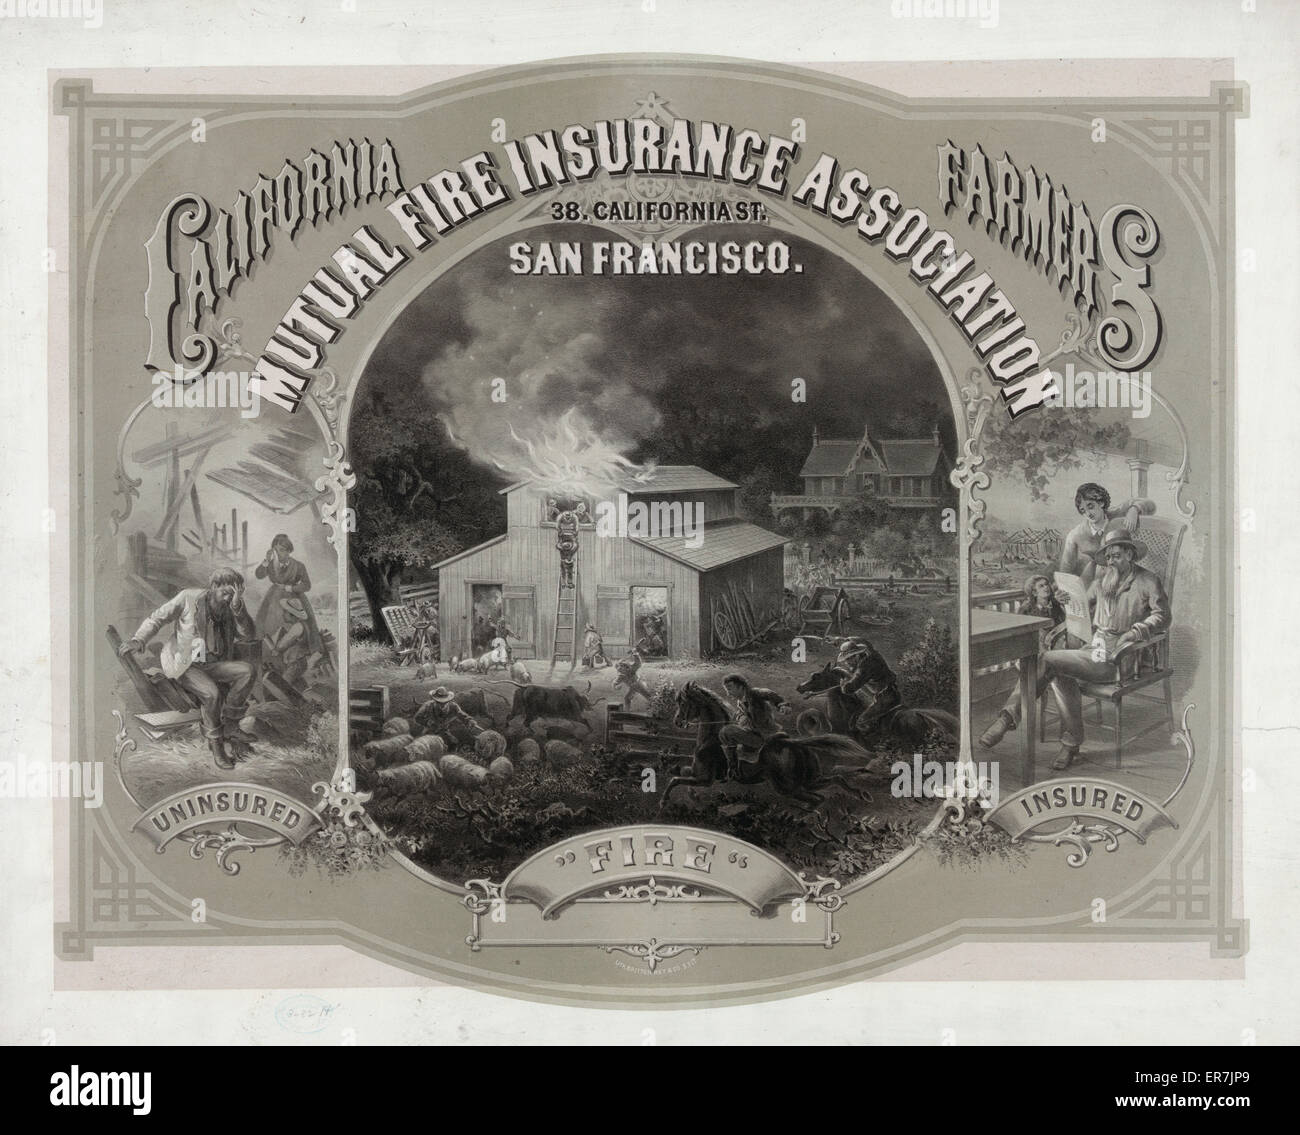 California Farmers Mutual Fire Insurance Association. Date 1877. - Stock Image